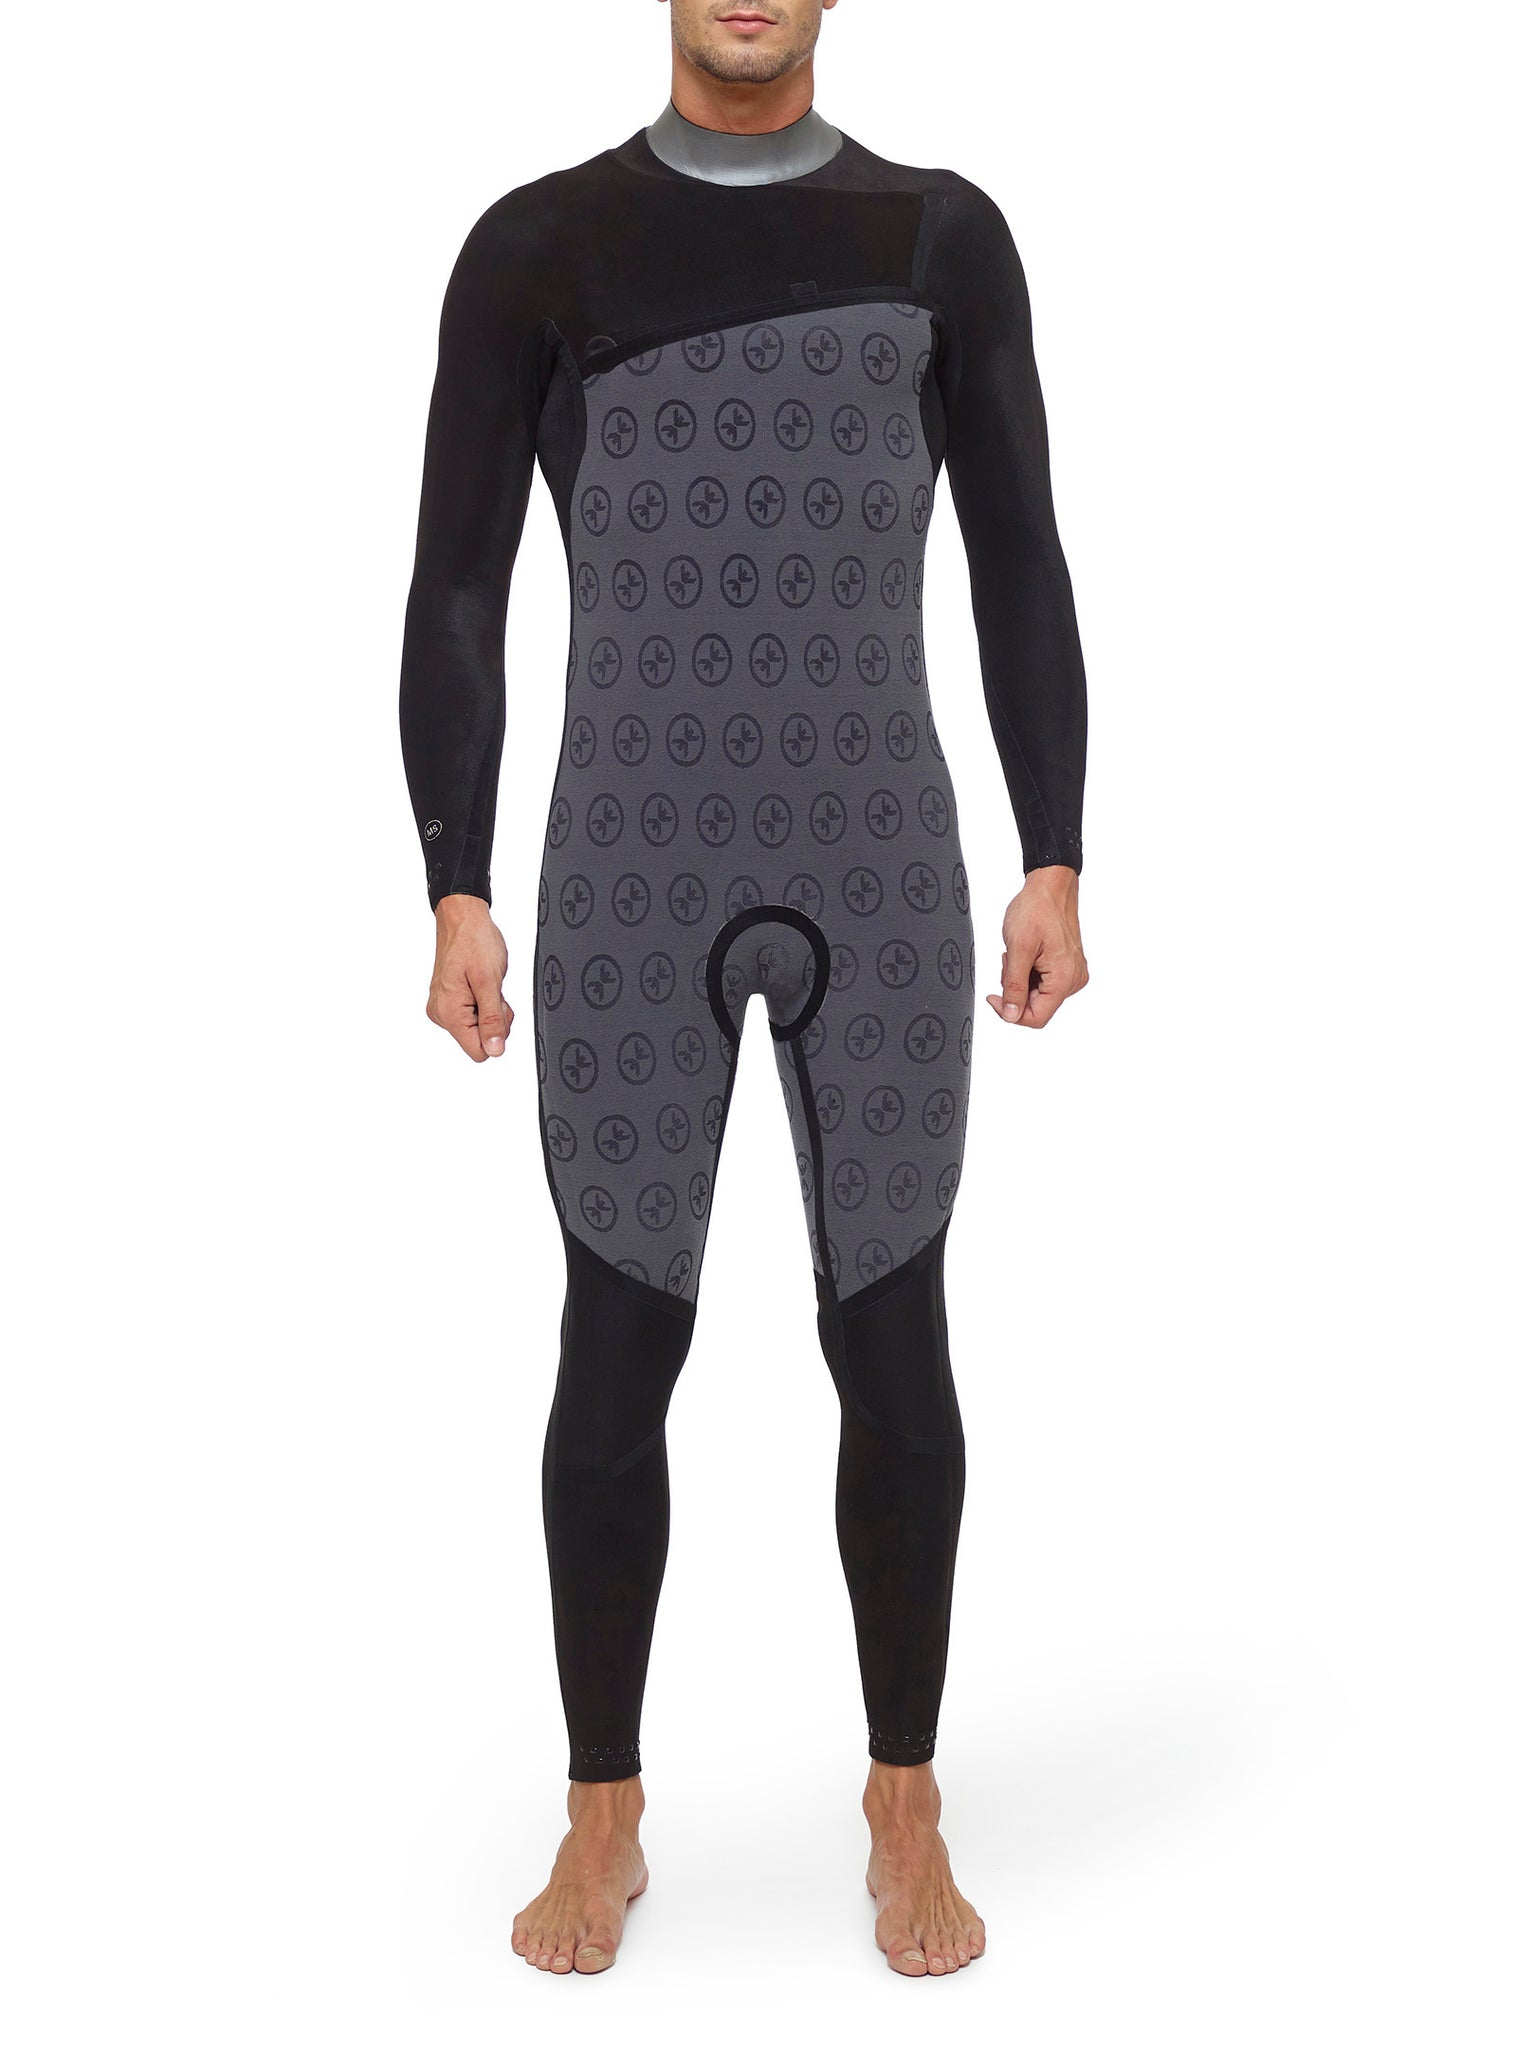 Wetsuit Man Competition 4/3 Zipperless Black